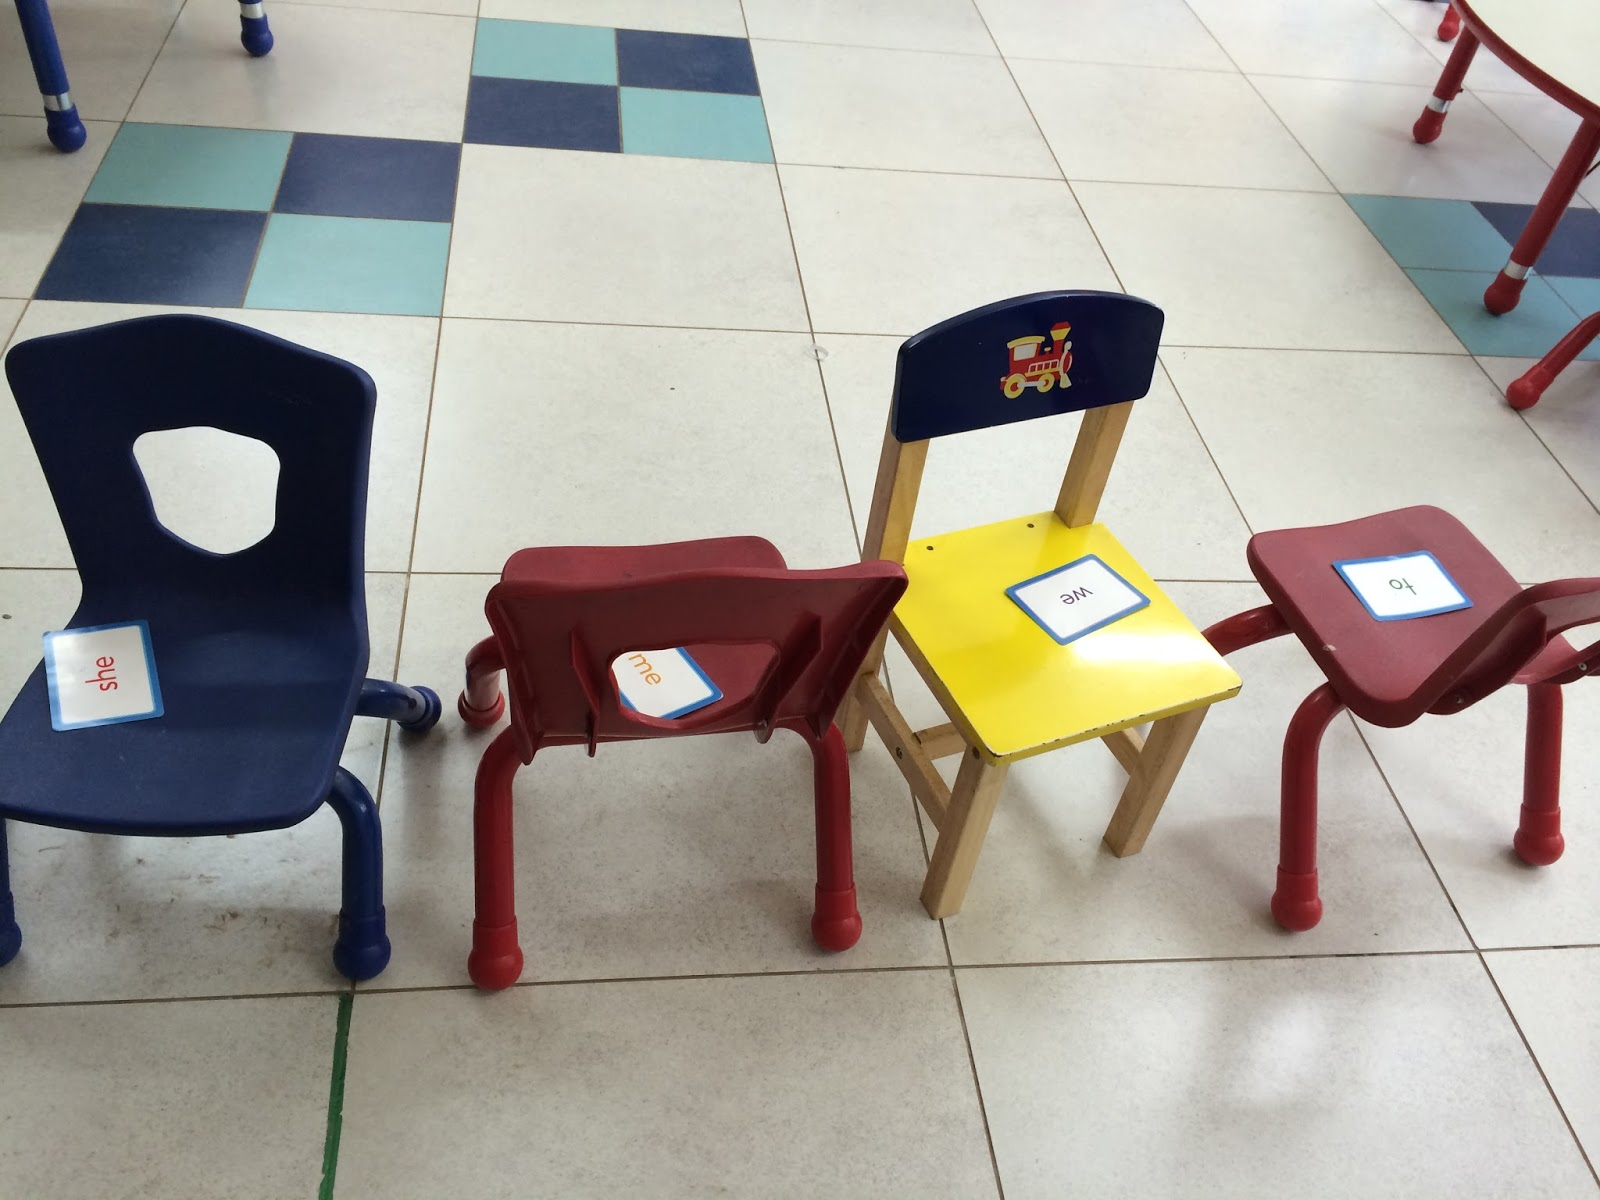 A Quick Indoor Game For The Hot Summer Days. Play It And Make Learning Fun!